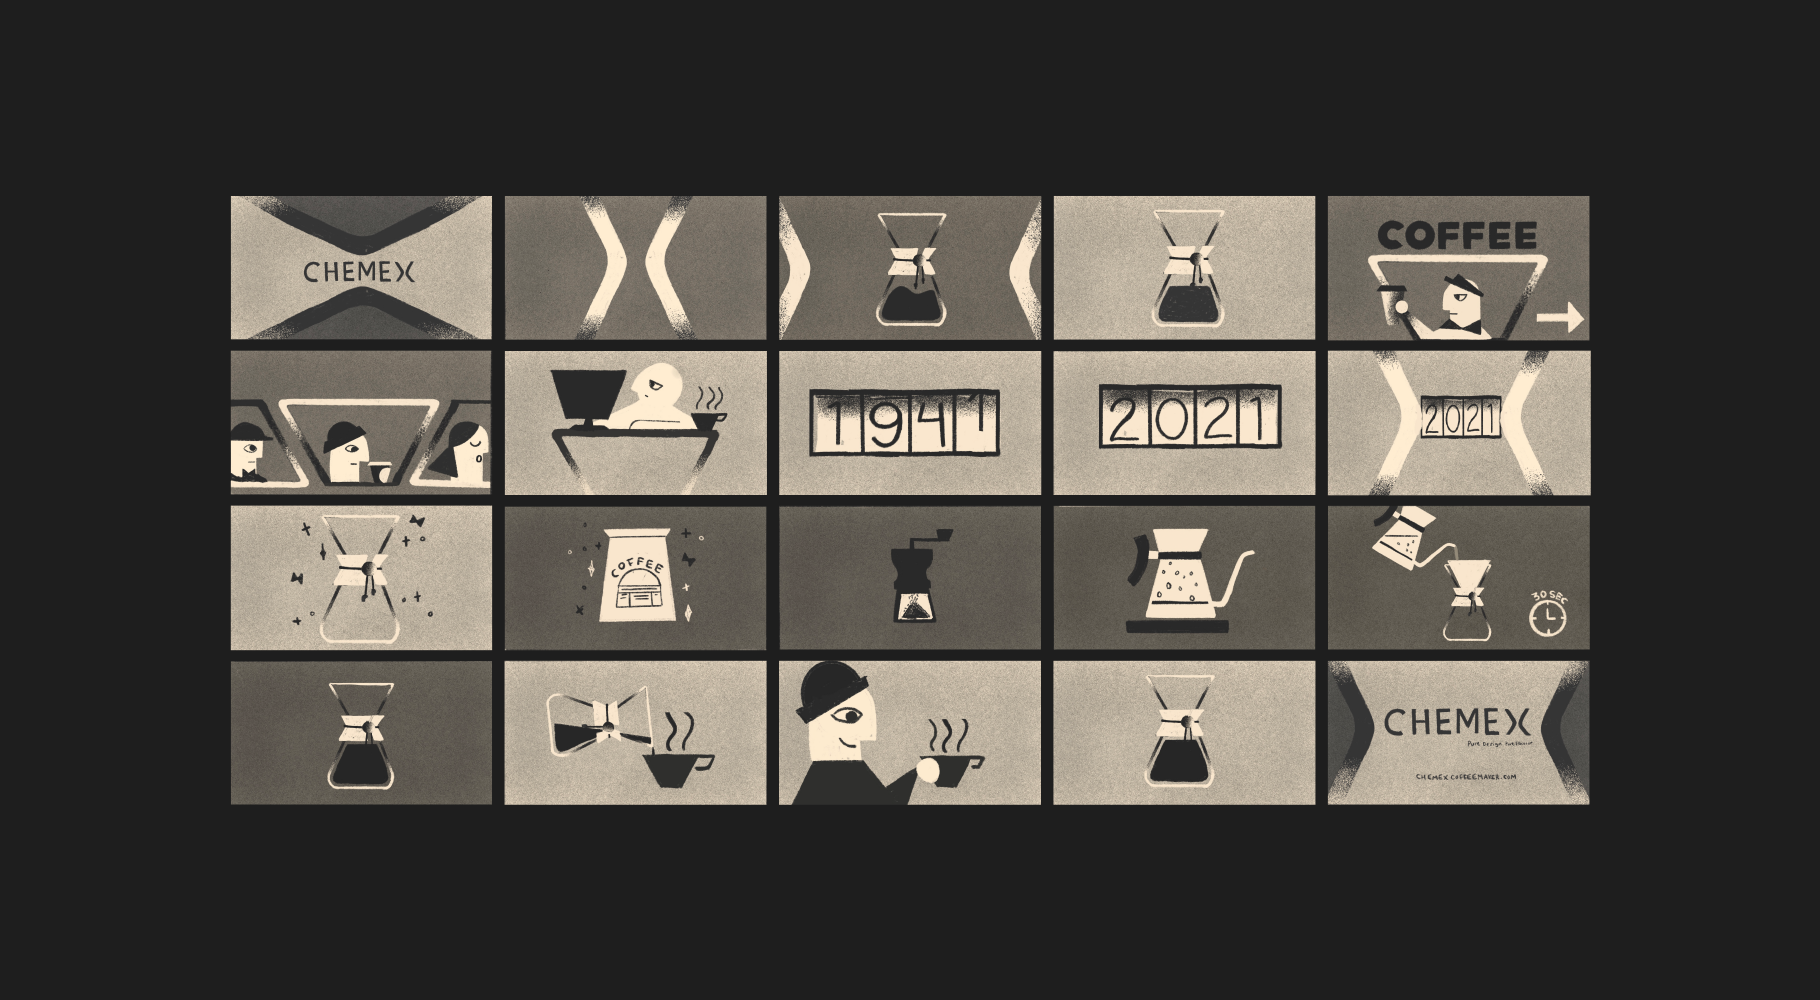 An image of storyboard sketches for a Chemex explainer video.